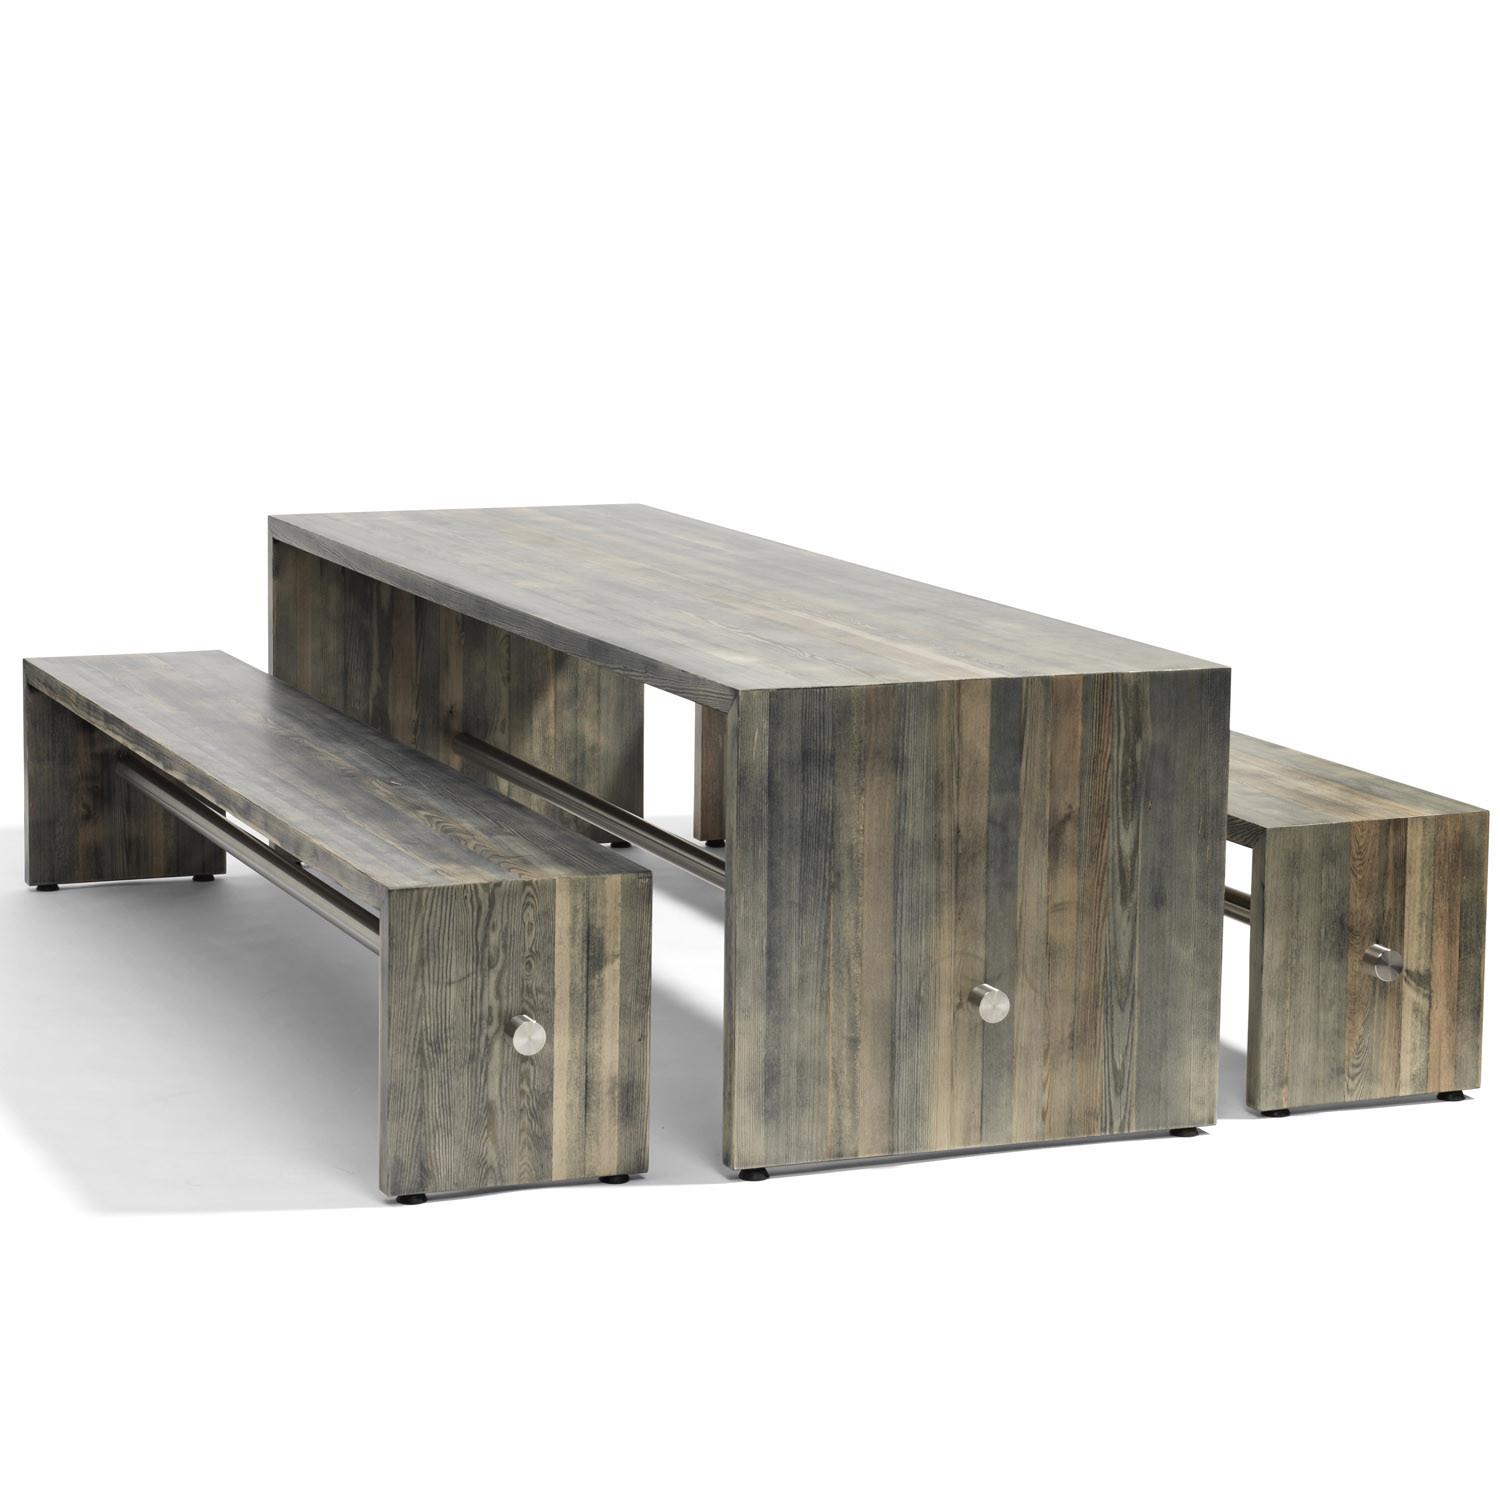 Ping Pong Bench & Table by Bla Station